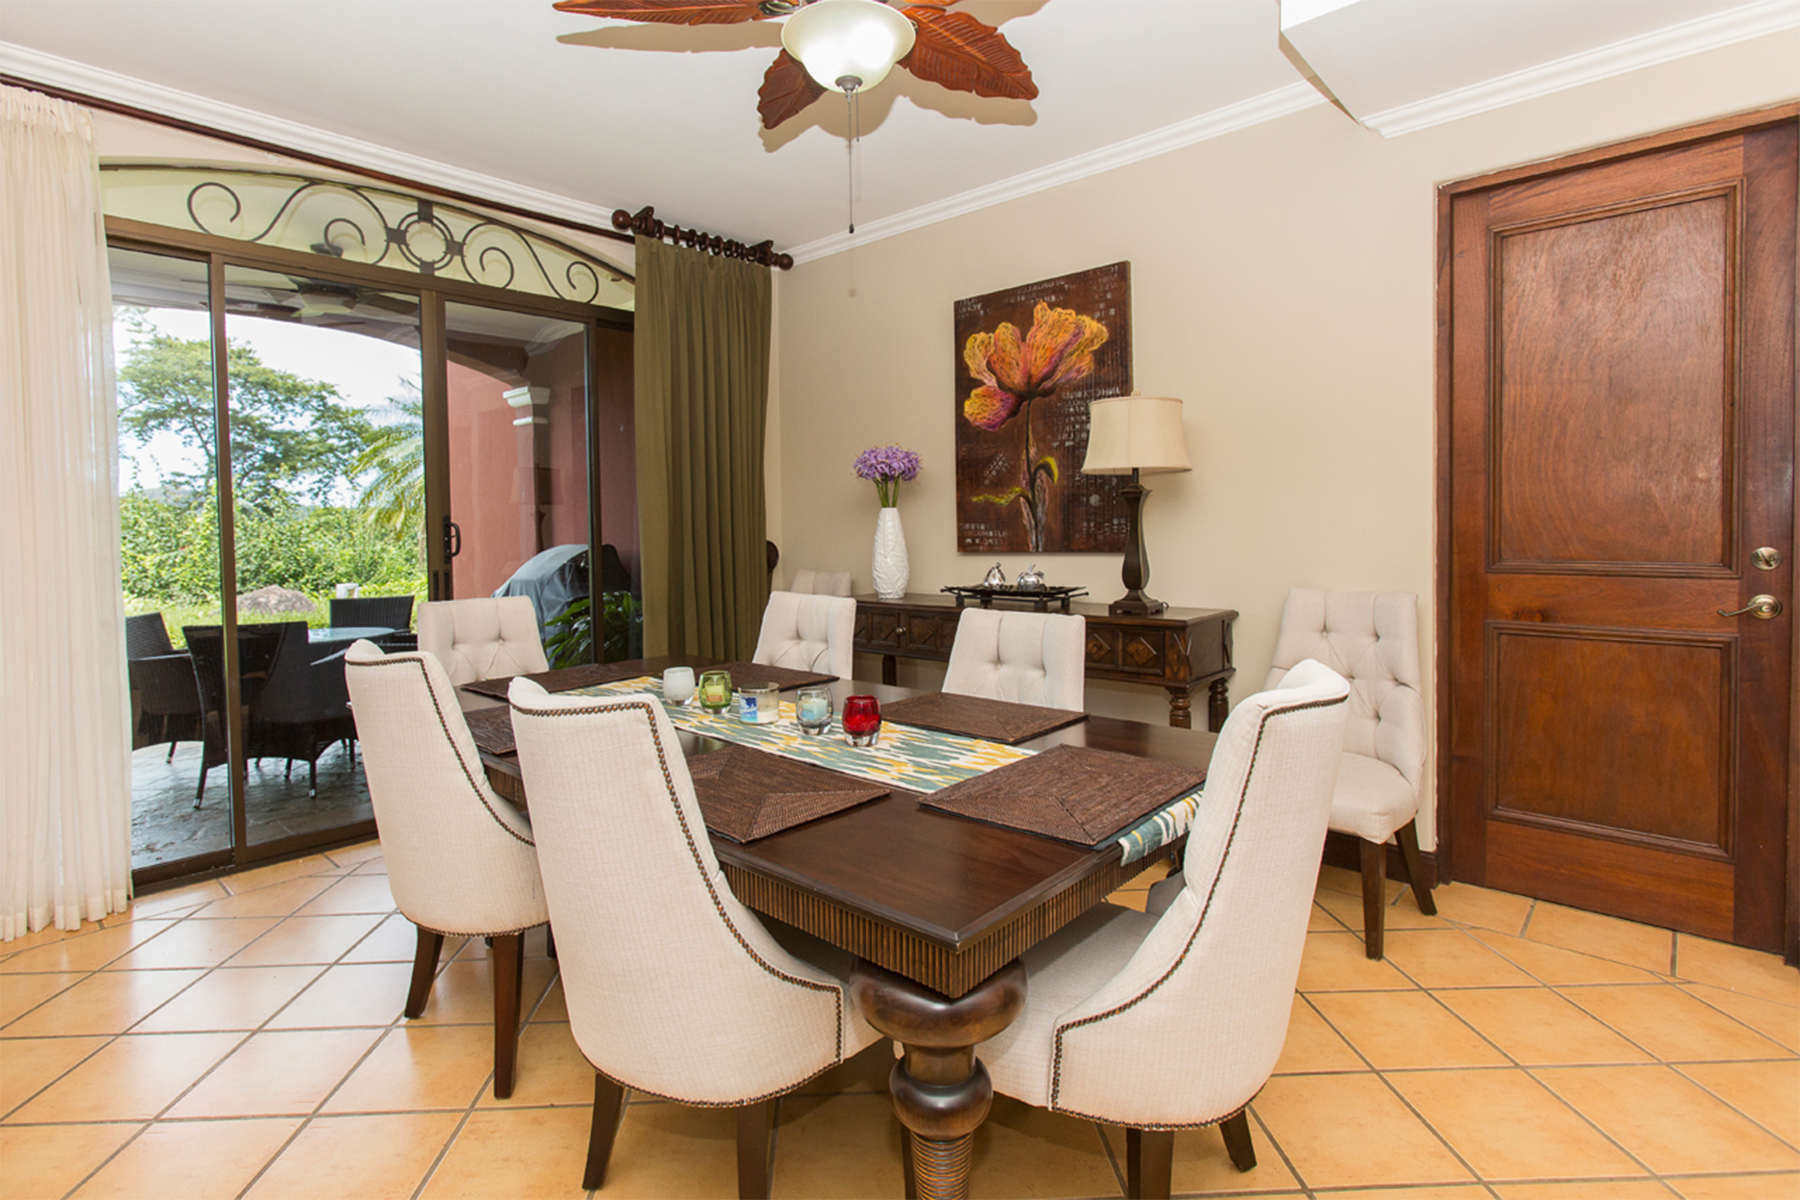 Condominium for Sale at Bougainvillea 8101 Reserva Conchal, Guanacaste Costa Rica